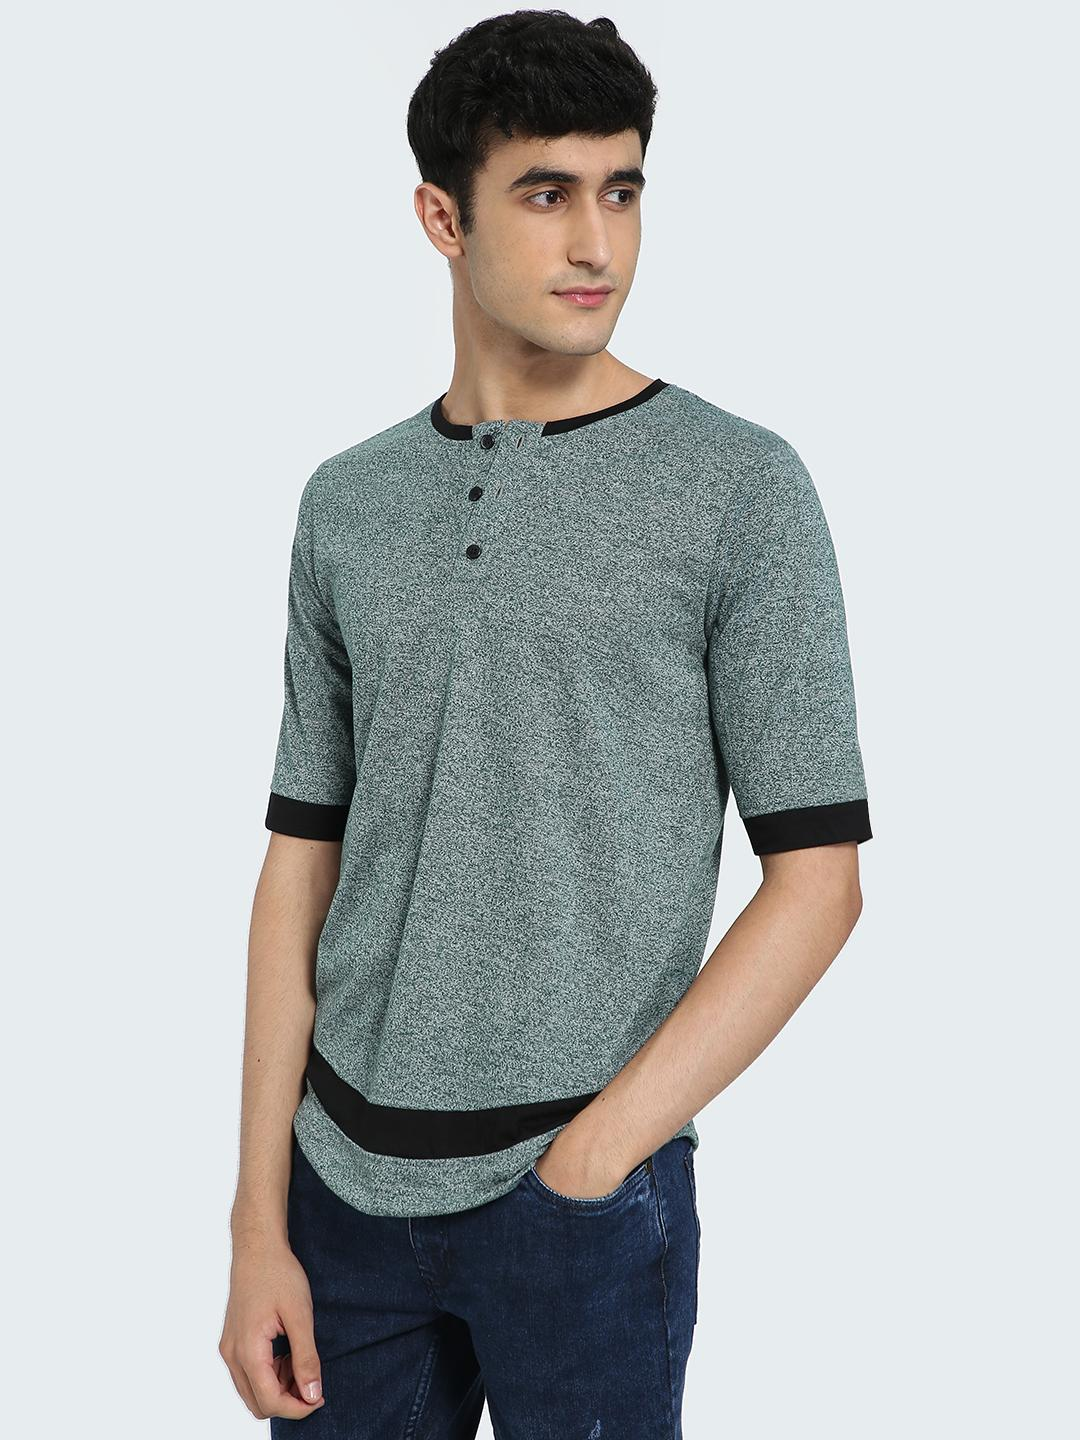 IMPACKT Grey Contrast Panel Henley Neck T-Shirt 1